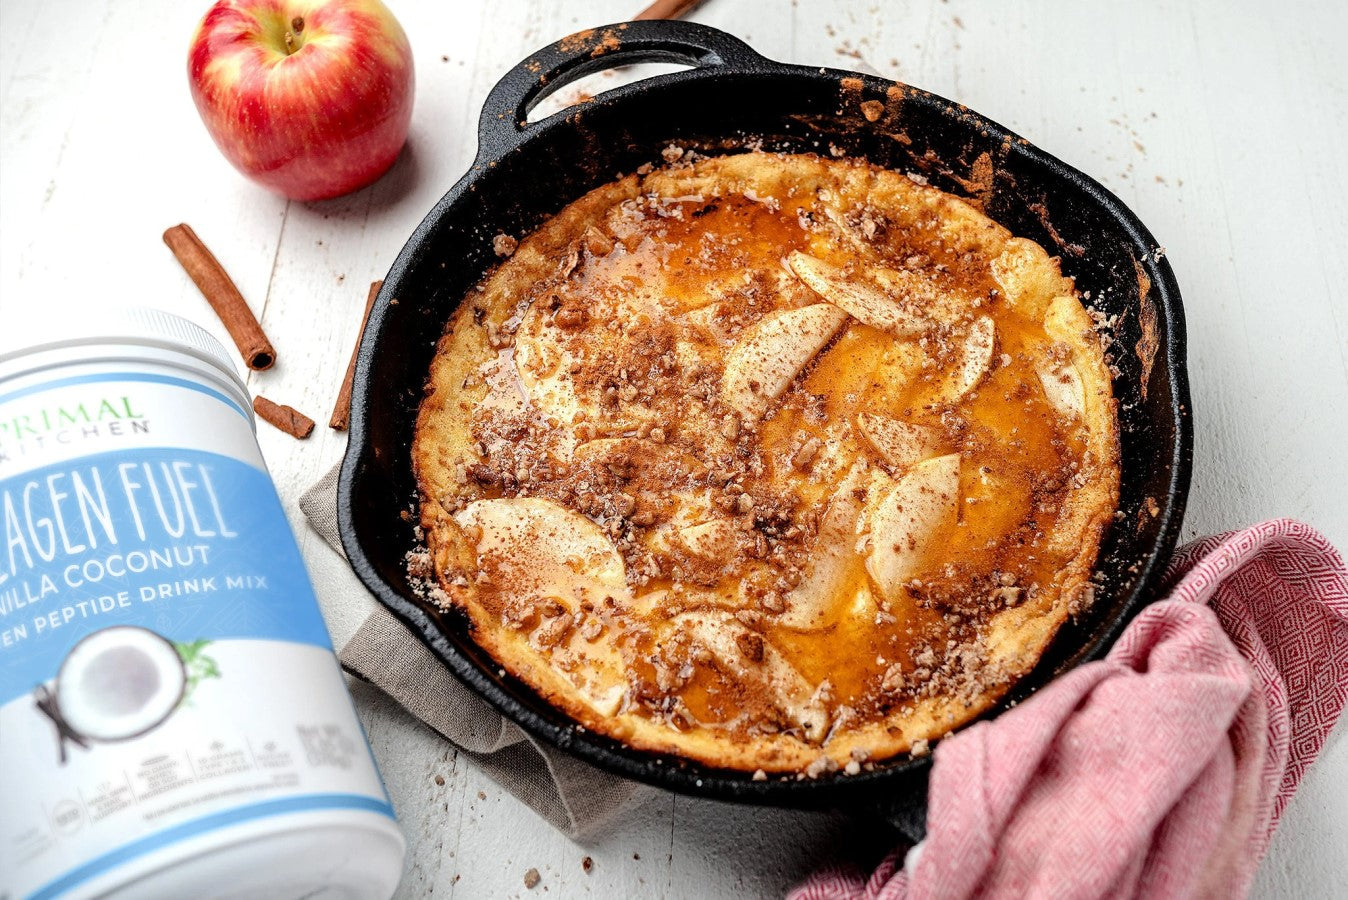 Cast Iron Skillet Of Apple Cinnamon Primal Pancakes With Red Delicious Apple And Cinnamon Sticks Made With Vanilla Coconut Collagen Peptide Powder Recipe Primal Kitchen